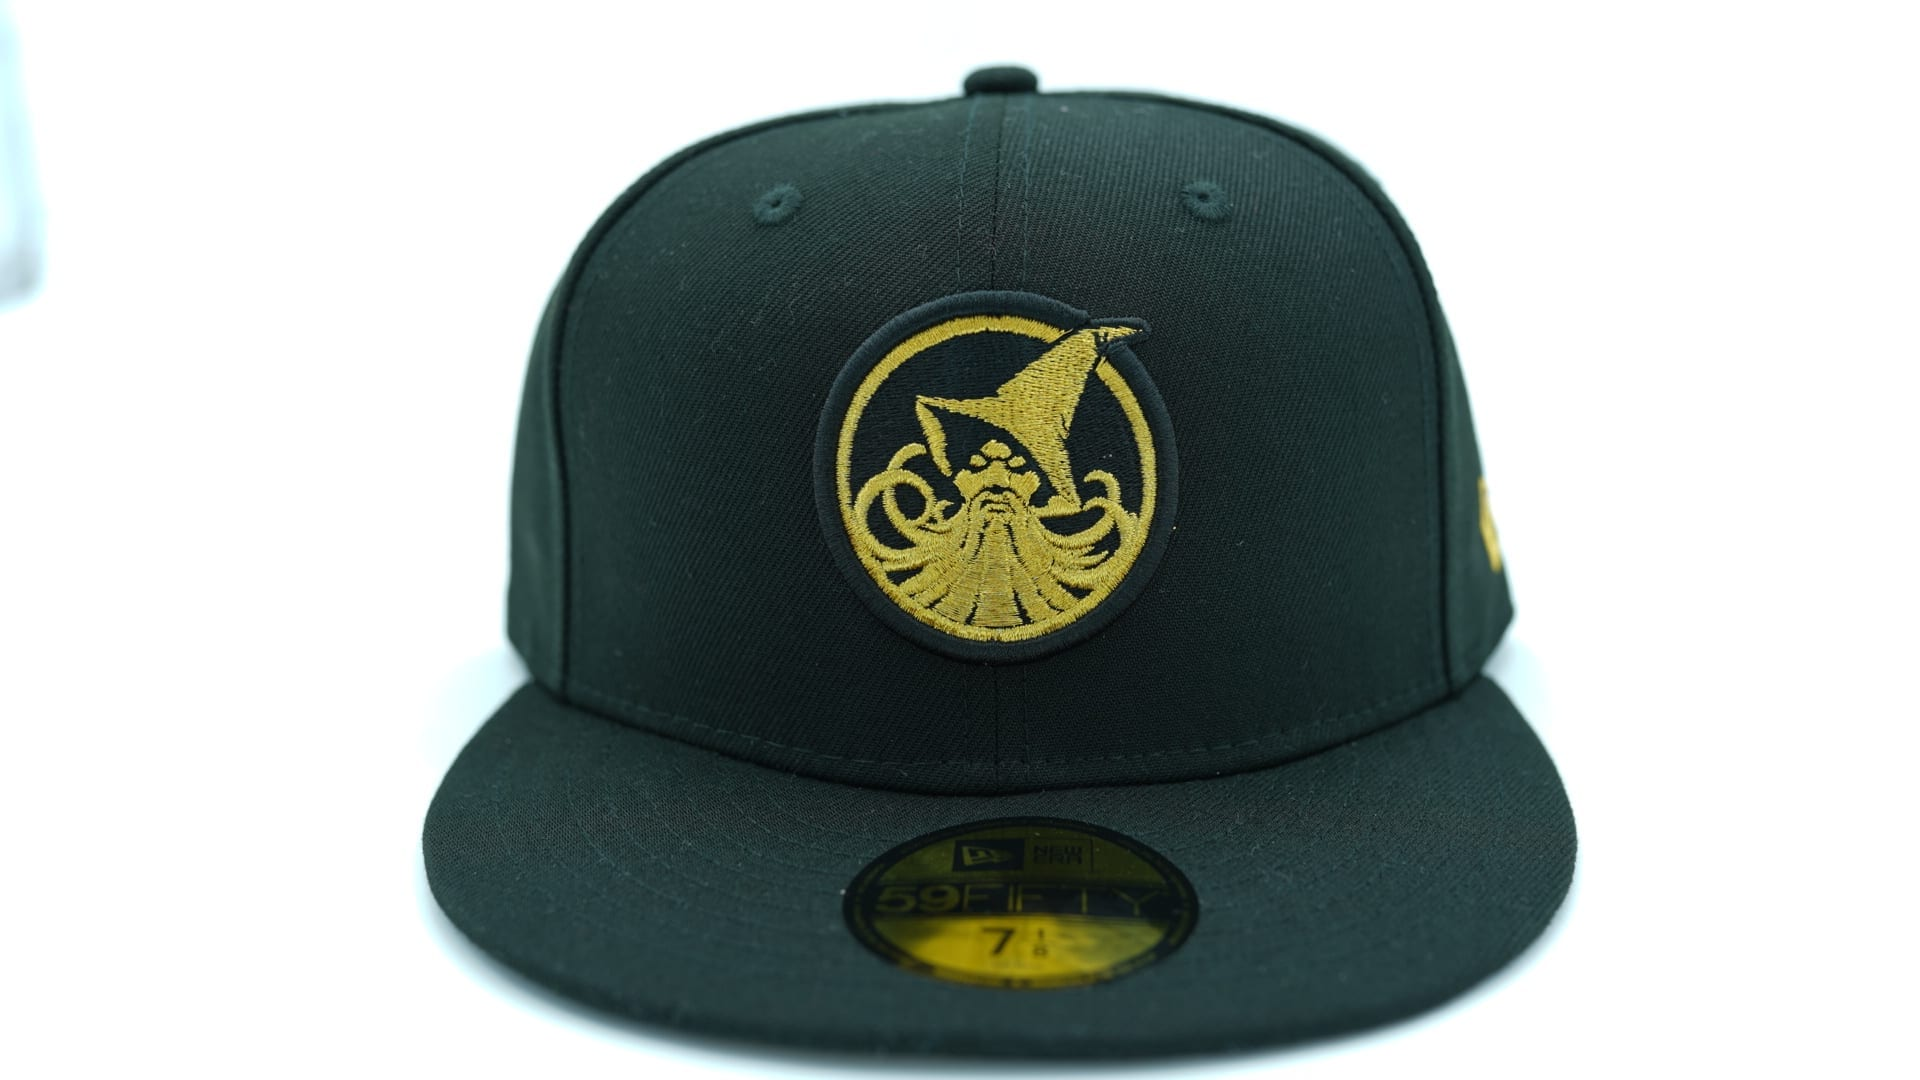 Preview JUST FITTEDS x DIONIC BRAND x NEW ERA Fitted Cap